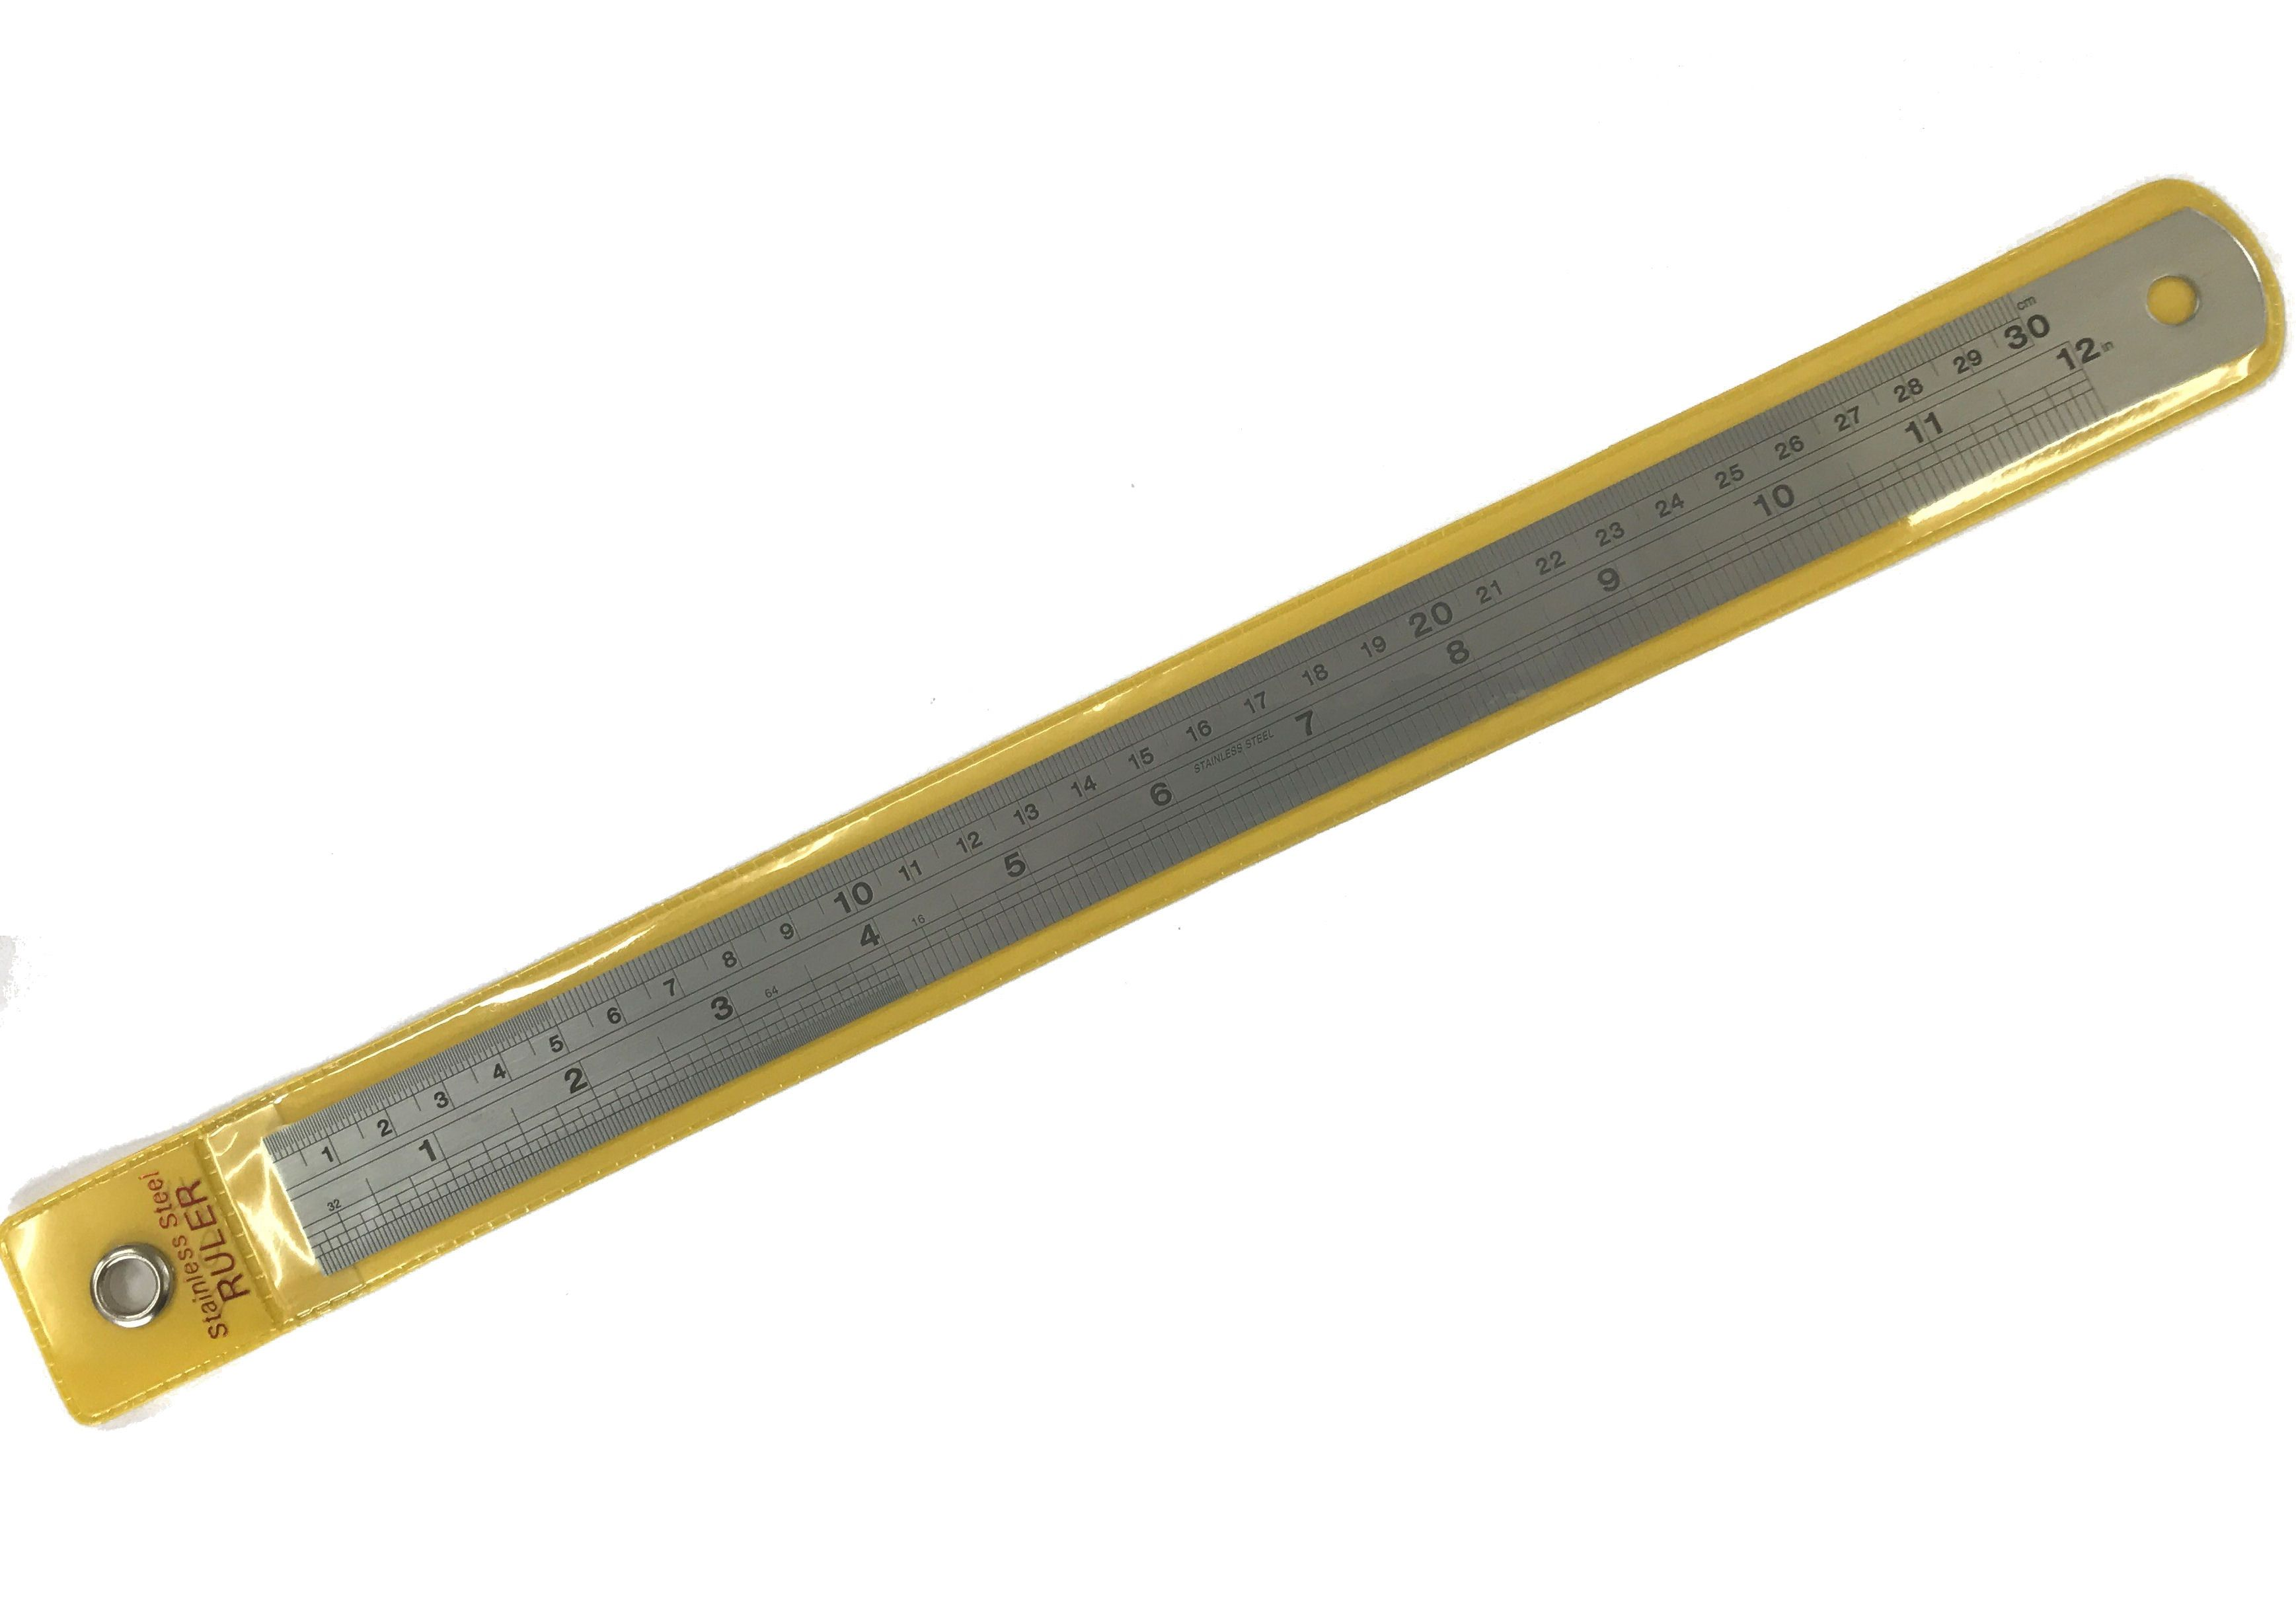 Stainless Steel 12 inch Engraved Rule